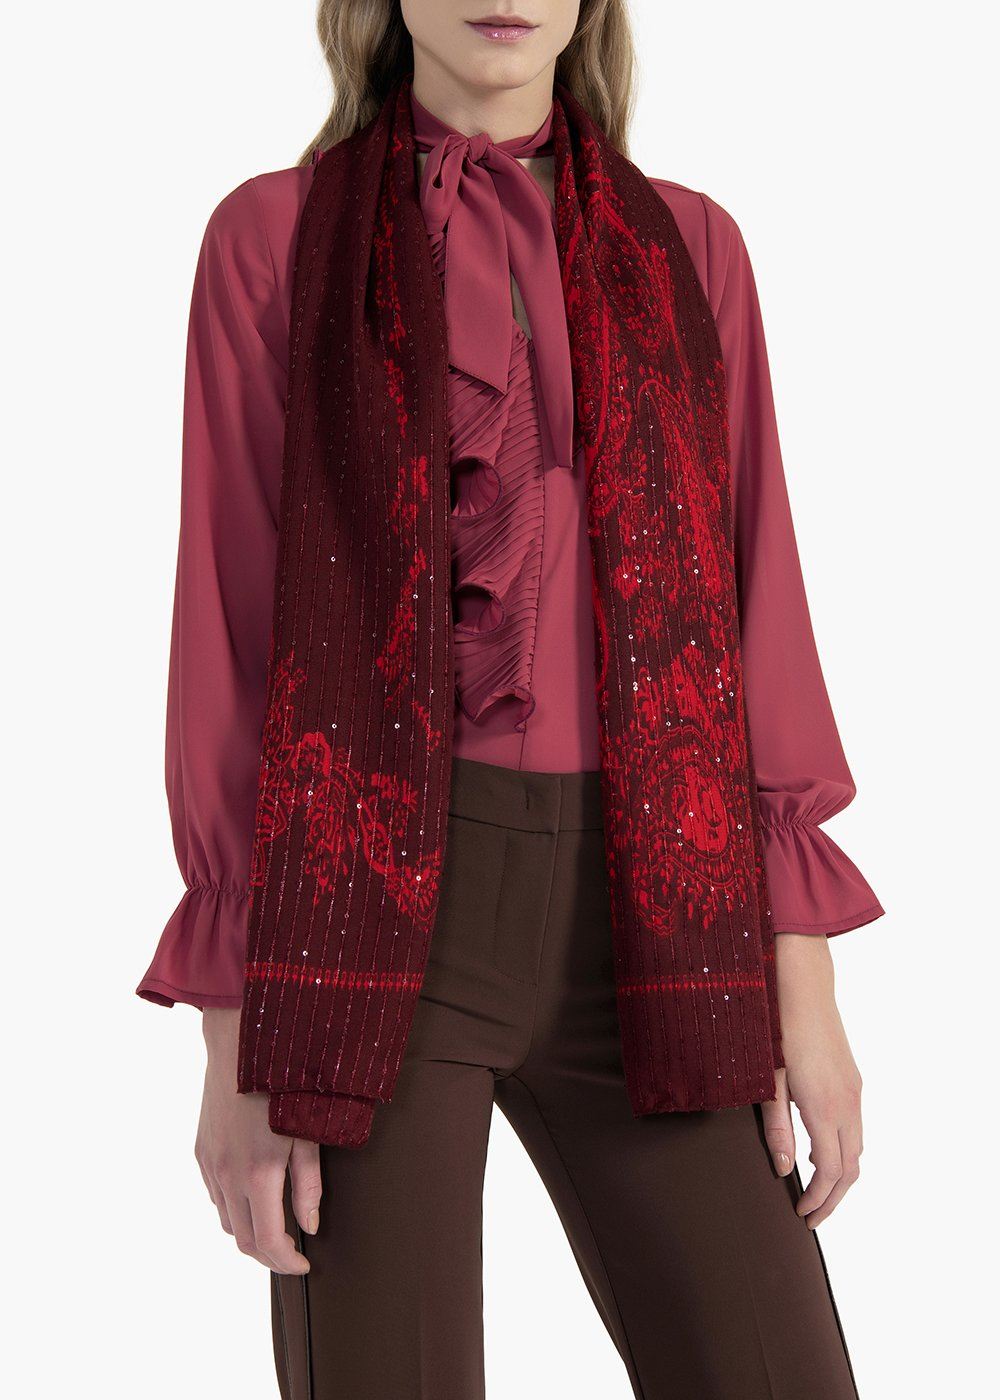 Cashmere scarf Strain and scrip printed with sequins